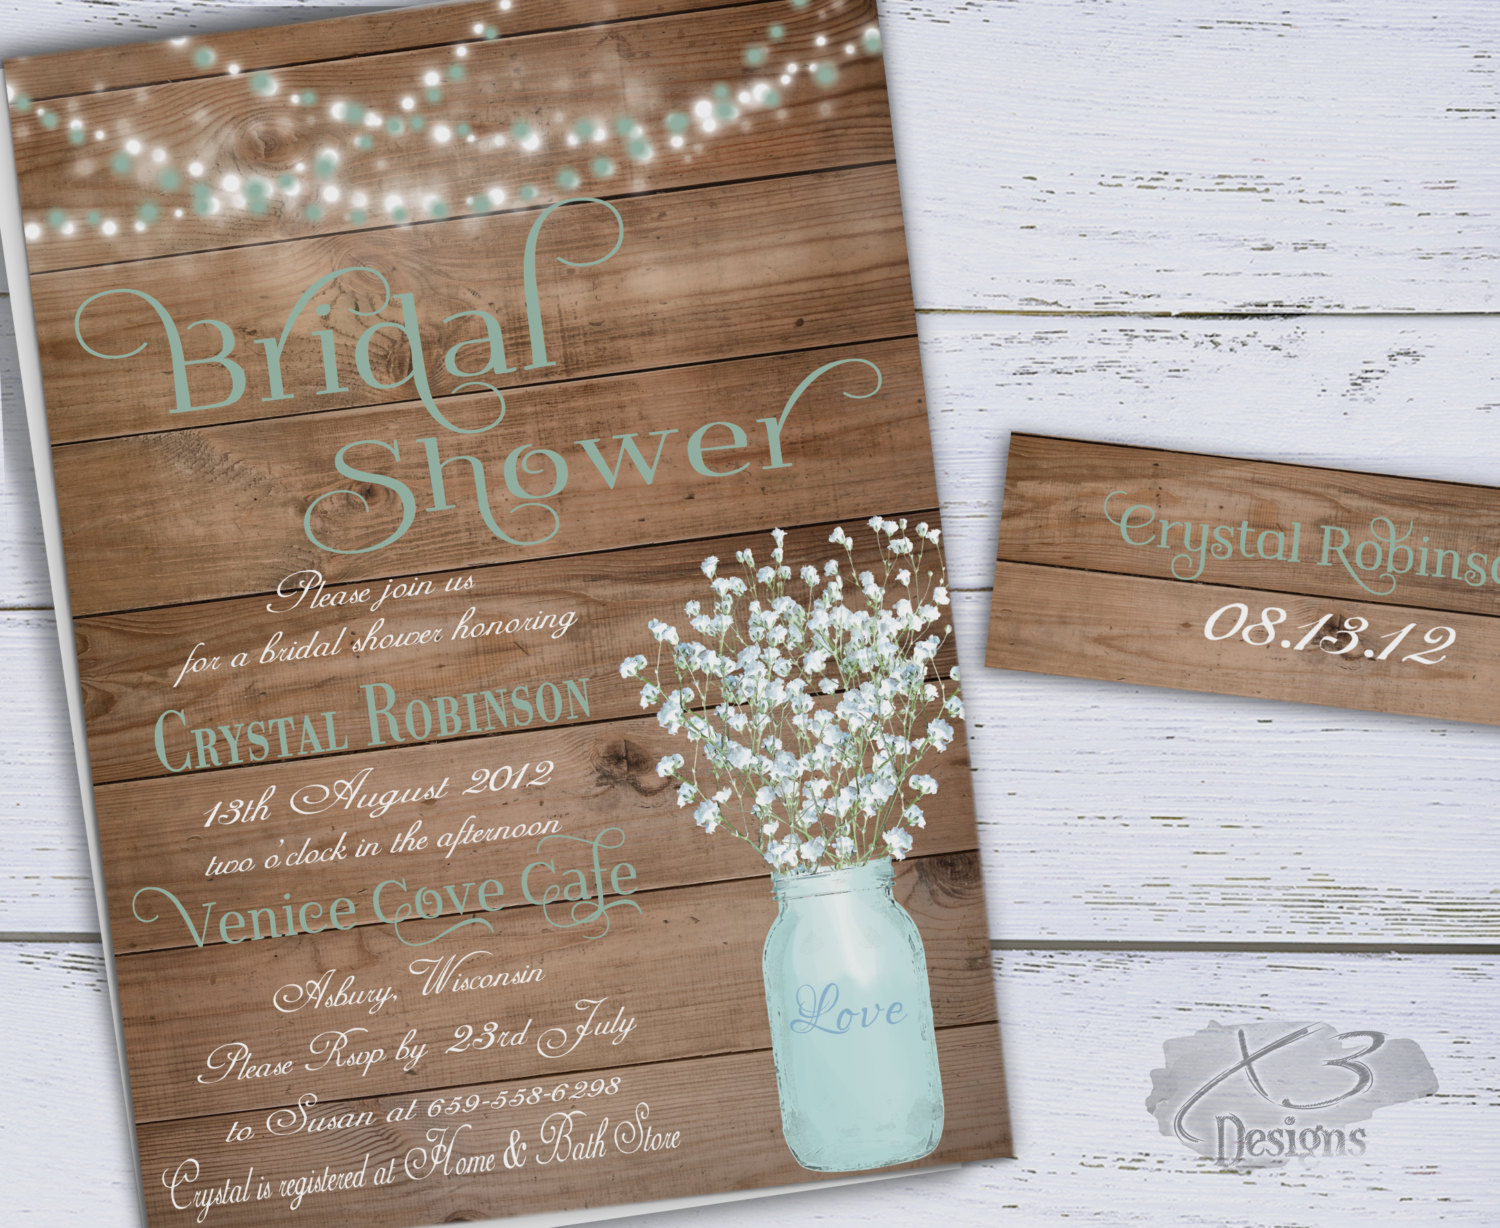 DIY Rustic Bridal Shower Invitation with Baby's Breath in Mason Jar